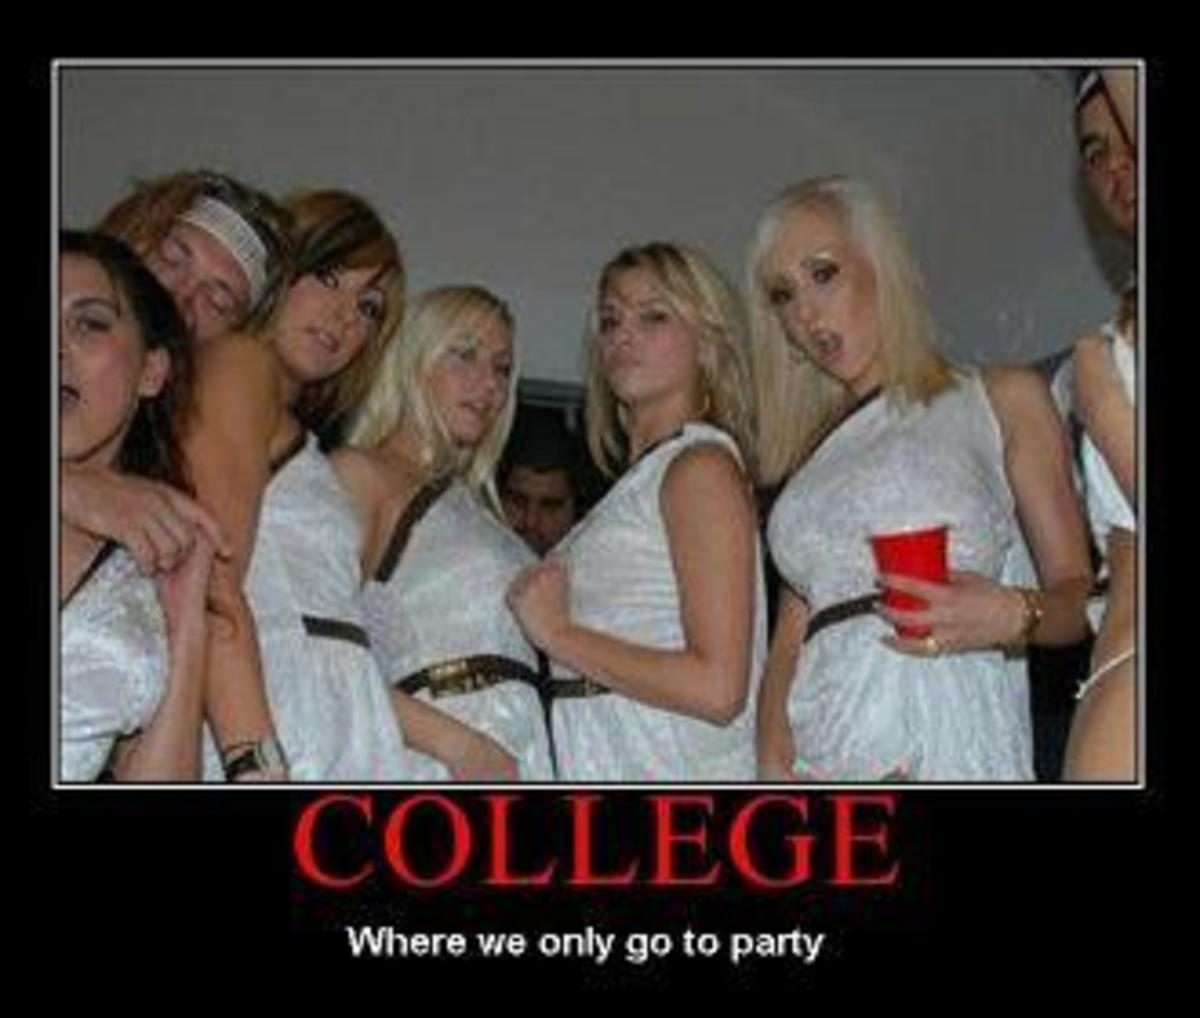 how-to-be-safe-at-college-parties